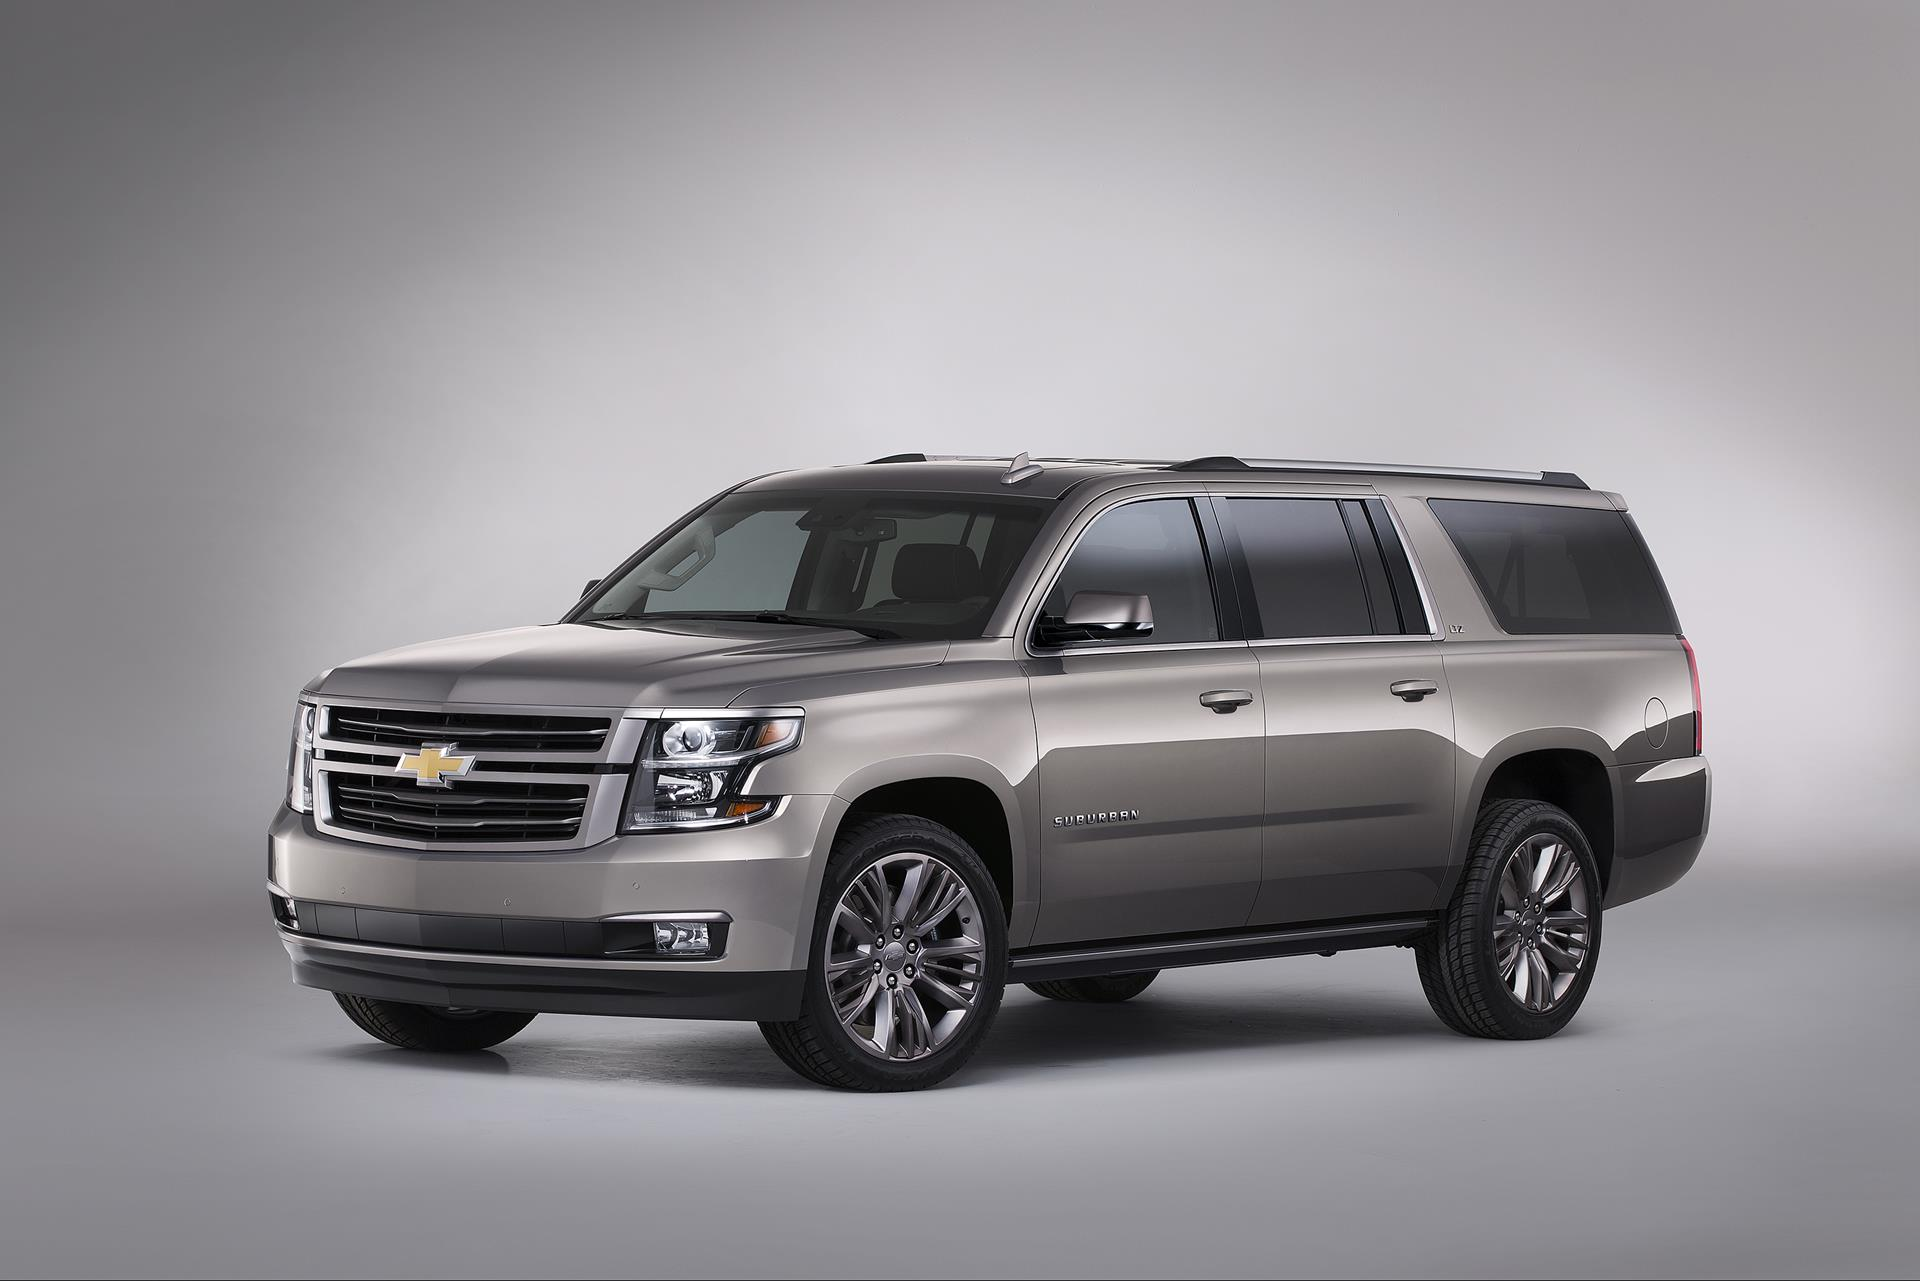 2015 Chevrolet Suburban Premium Outdoors Concept News and ...